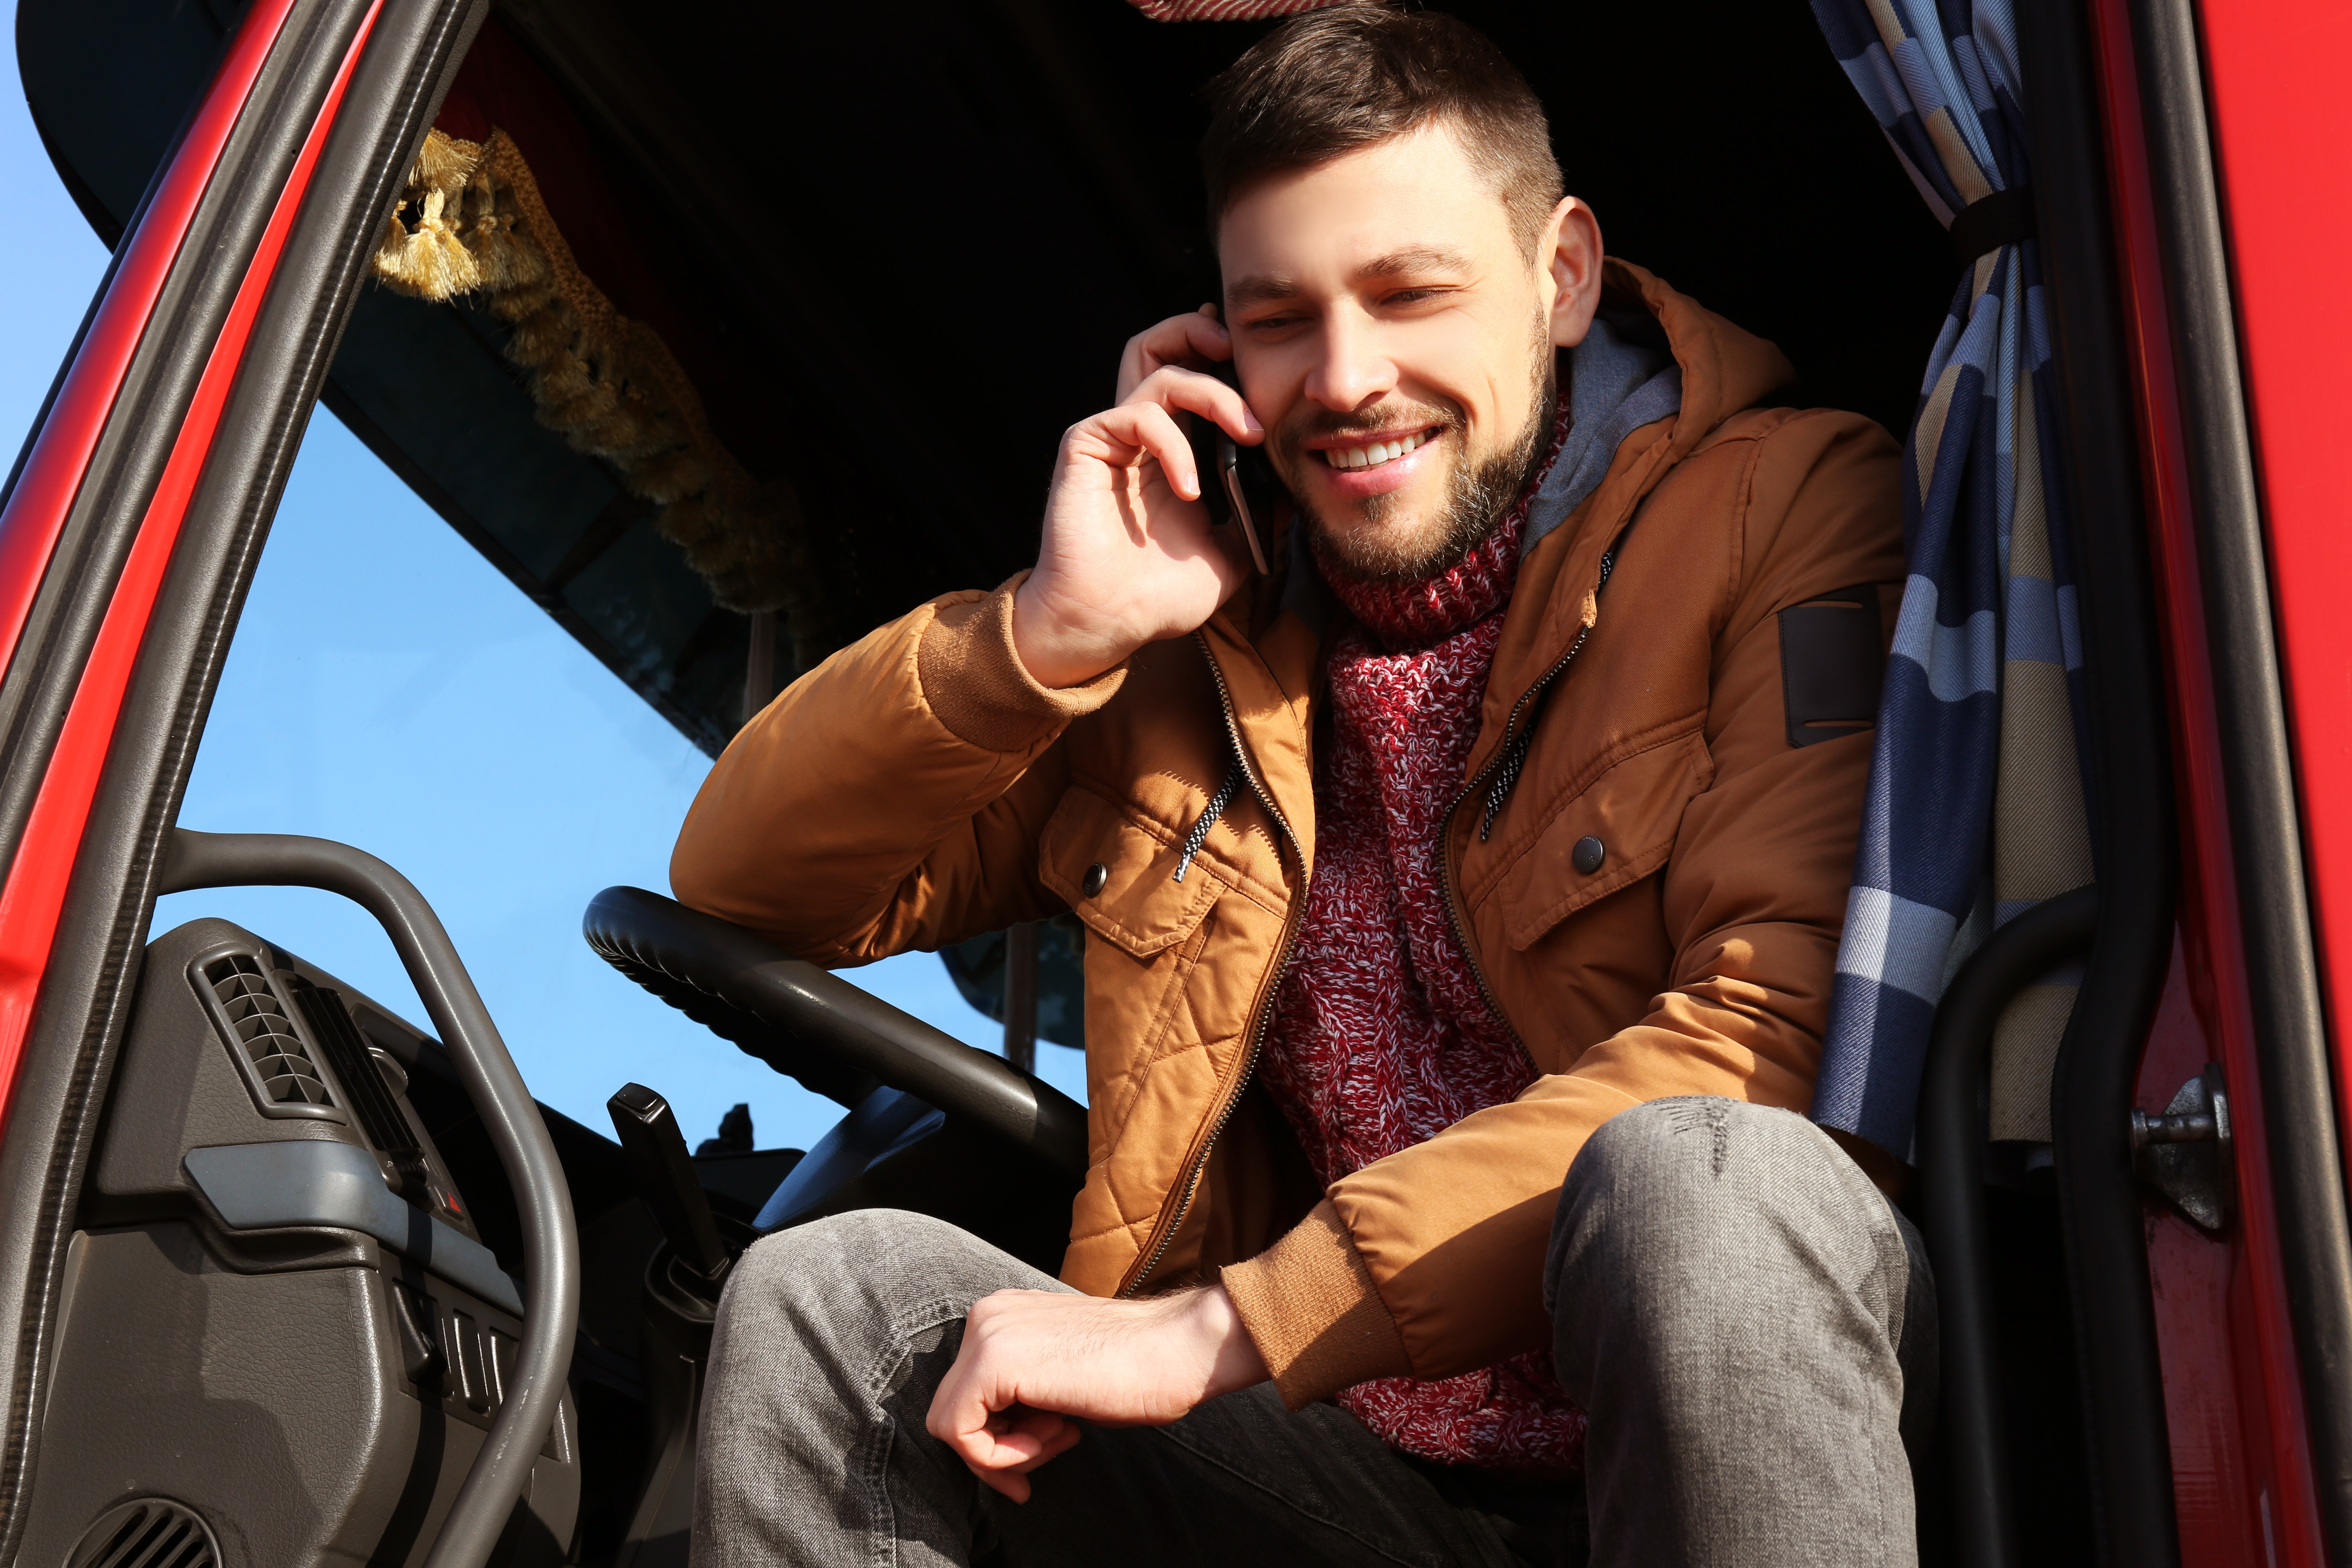 Young Truck Driver on the Phone with a Friend